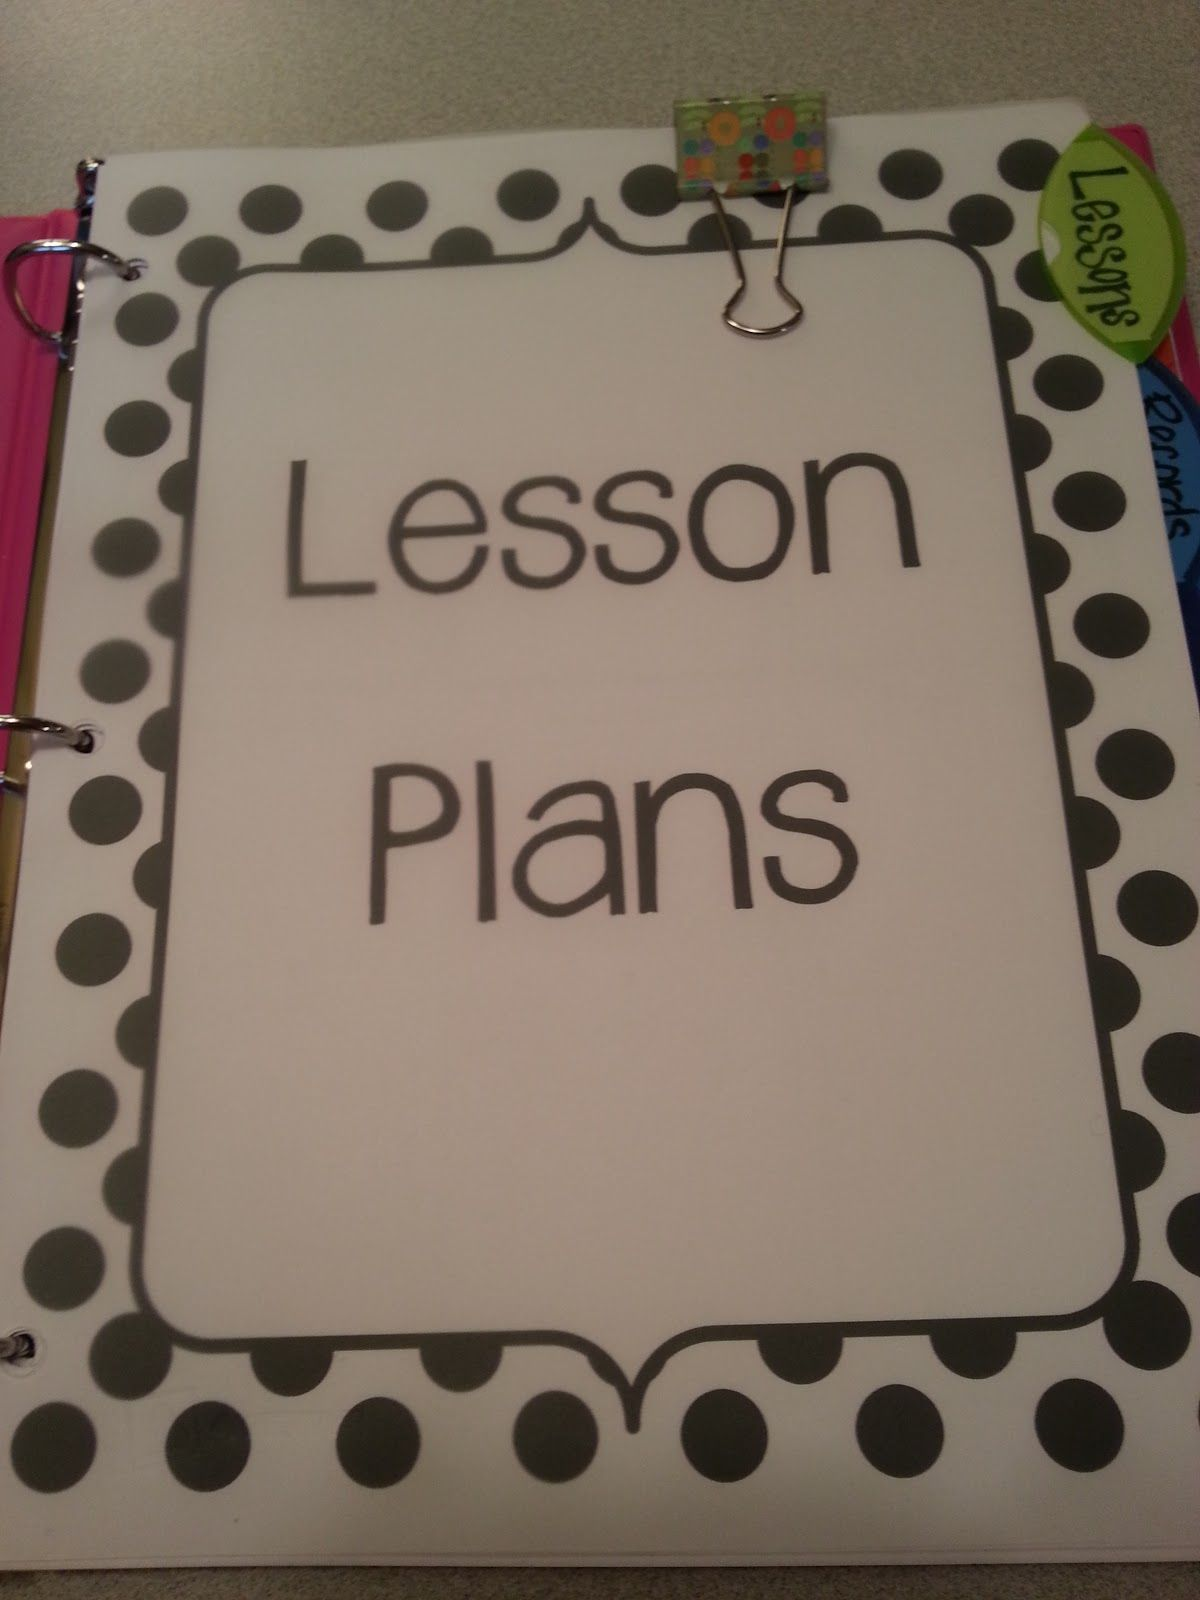 Hanselor the Counselor School counseling lessons plans